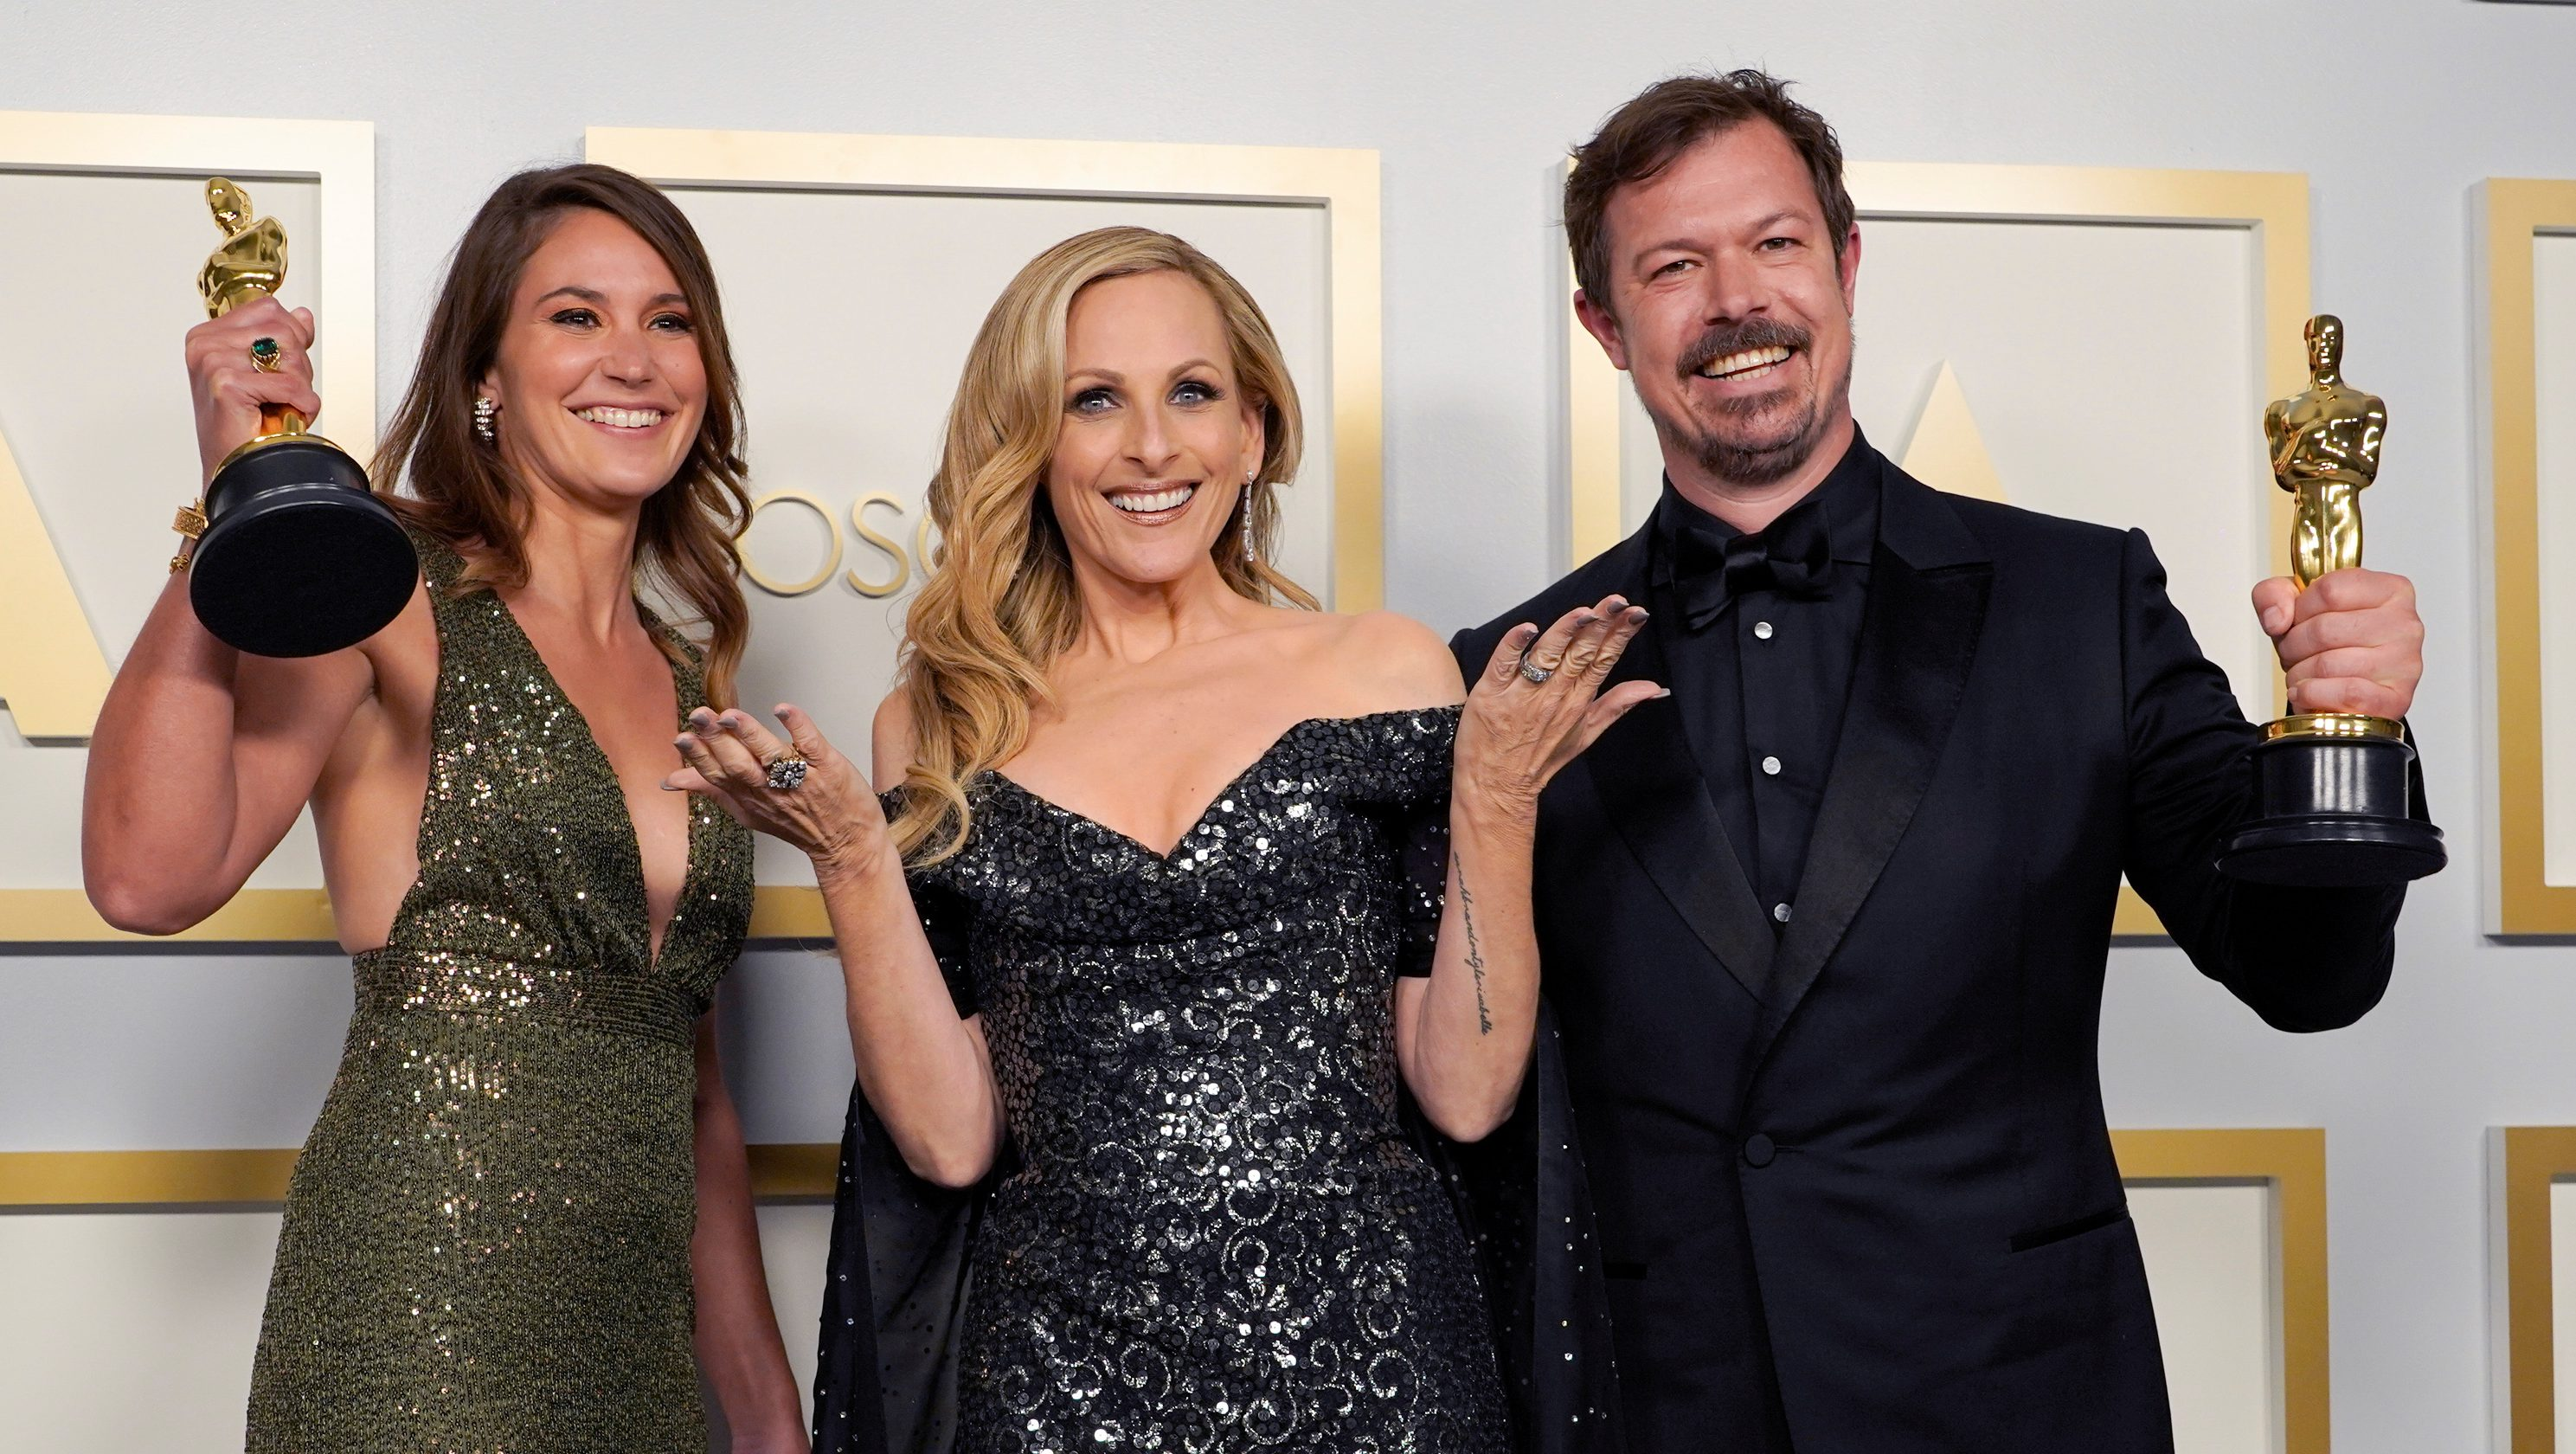 """Pippa Ehrlich, Marlee Matlin, and James Reed, winners of the award for Best Documentary Feature for """"My Octopus Teacher"""" pose at the Oscars on April 25."""